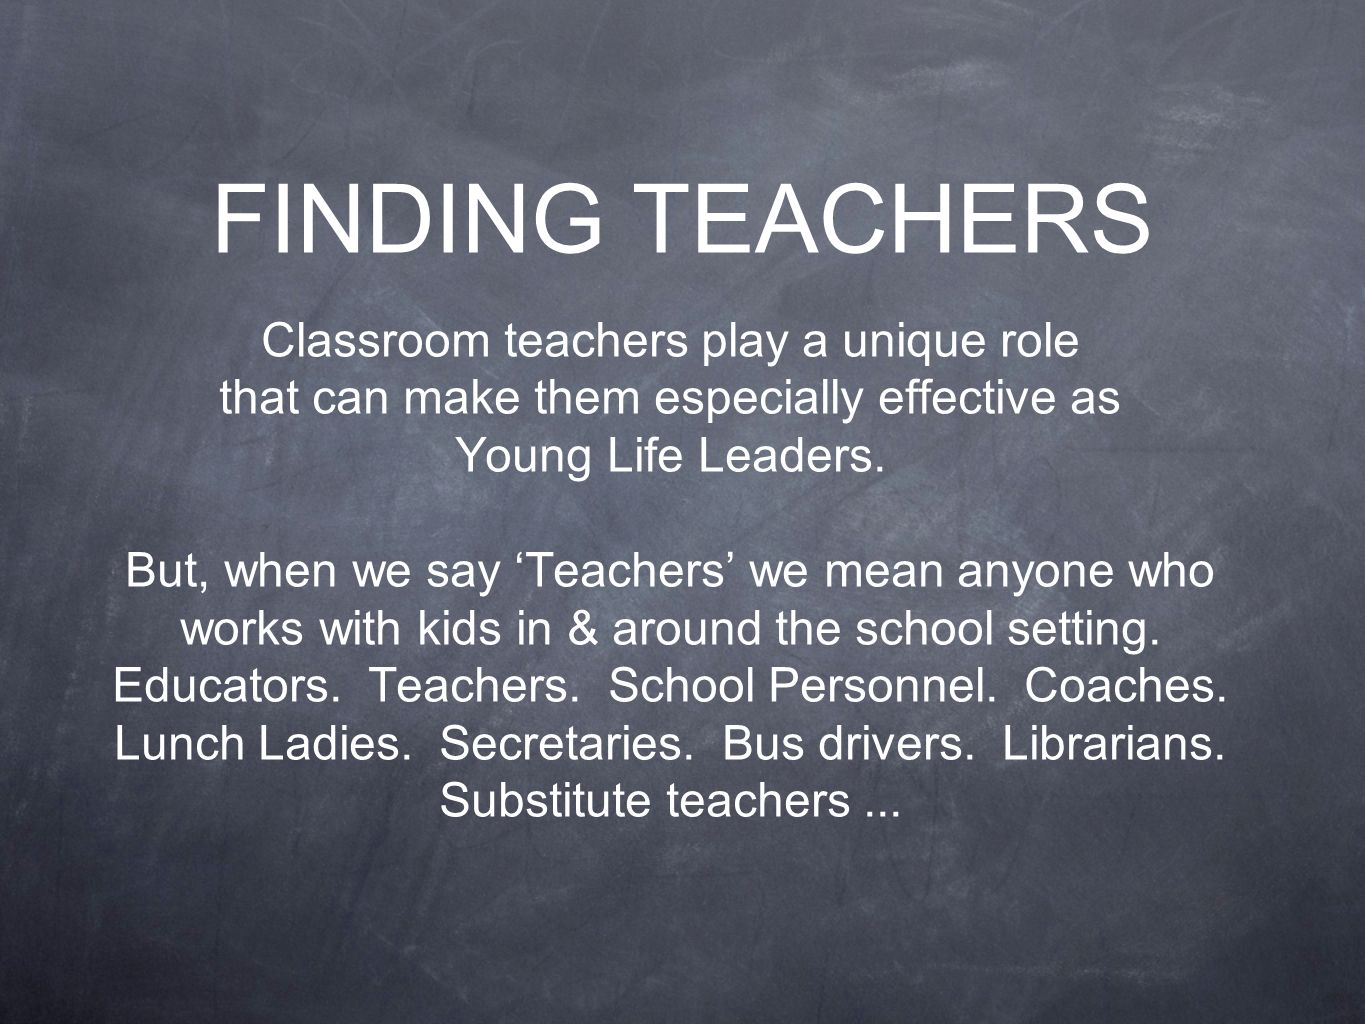 Classroom teachers play a unique role that can make them especially effective as Young Life Leaders.